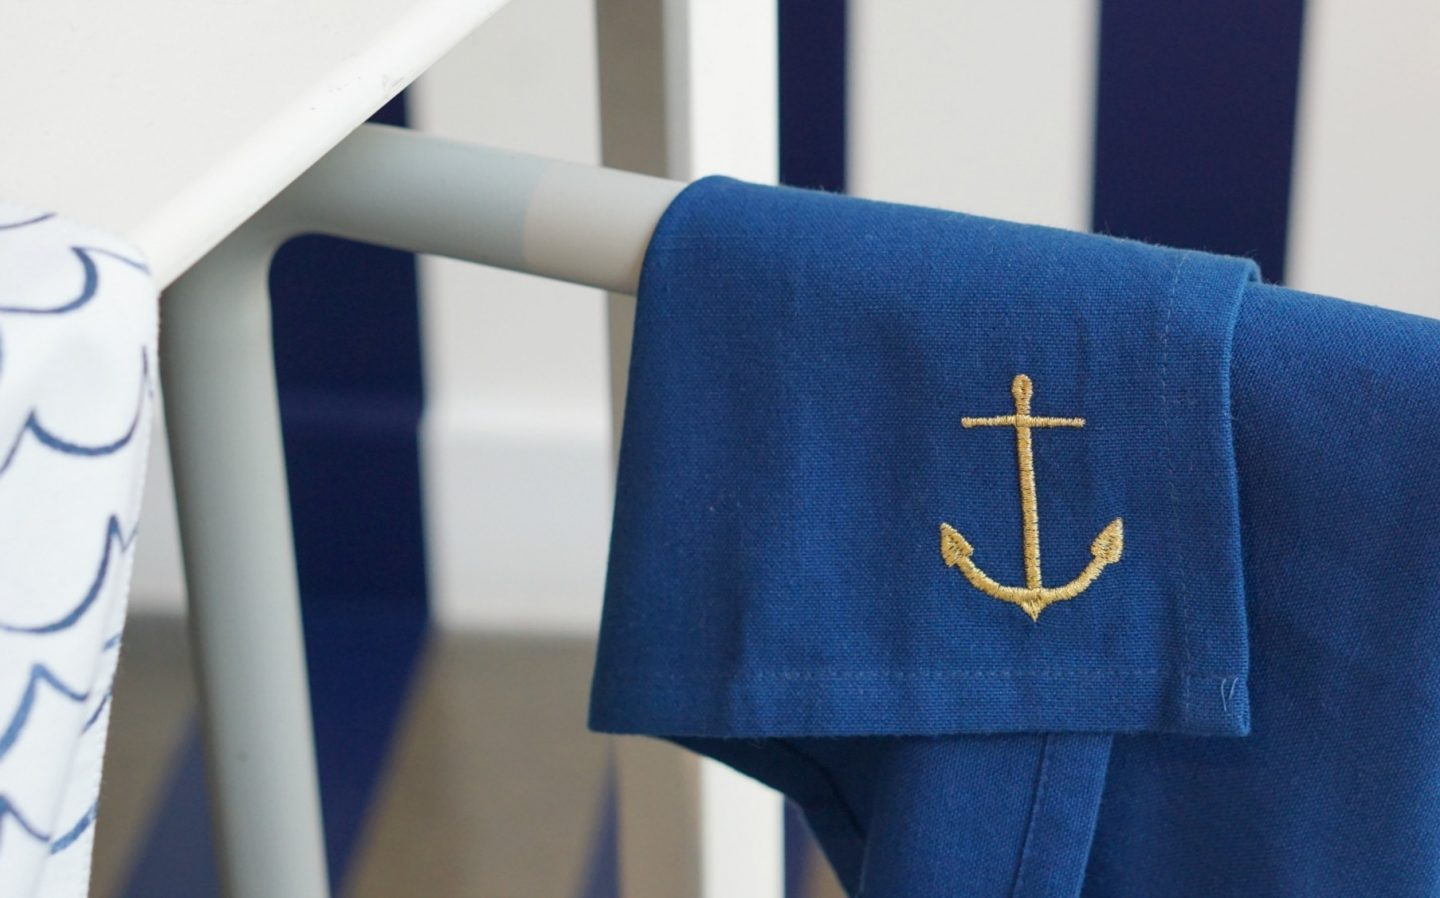 Nautical Styling at the Spring Summer 18 Sainsburys Show www.extraordinarychaos.com